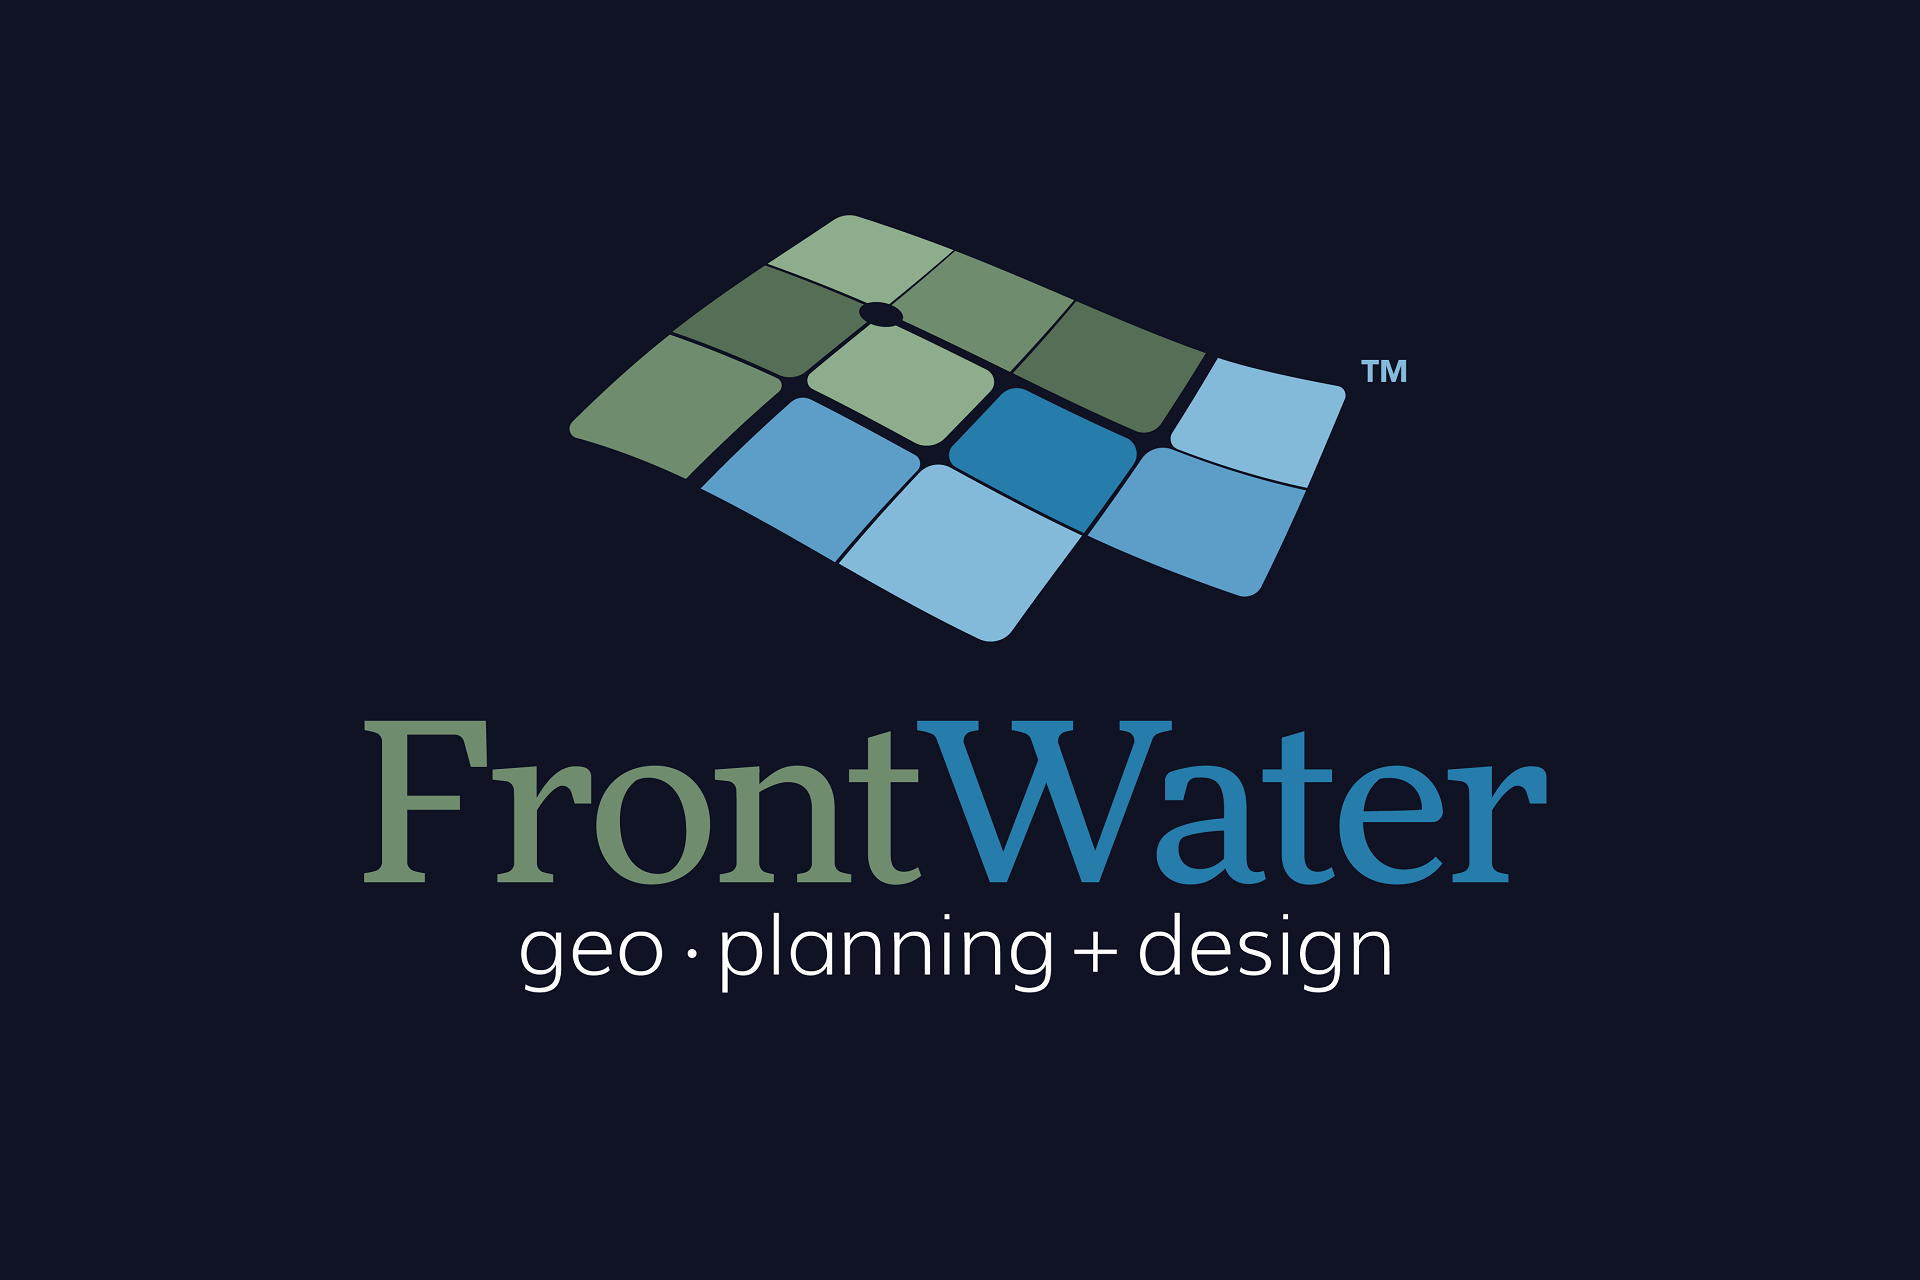 FrontWater logo